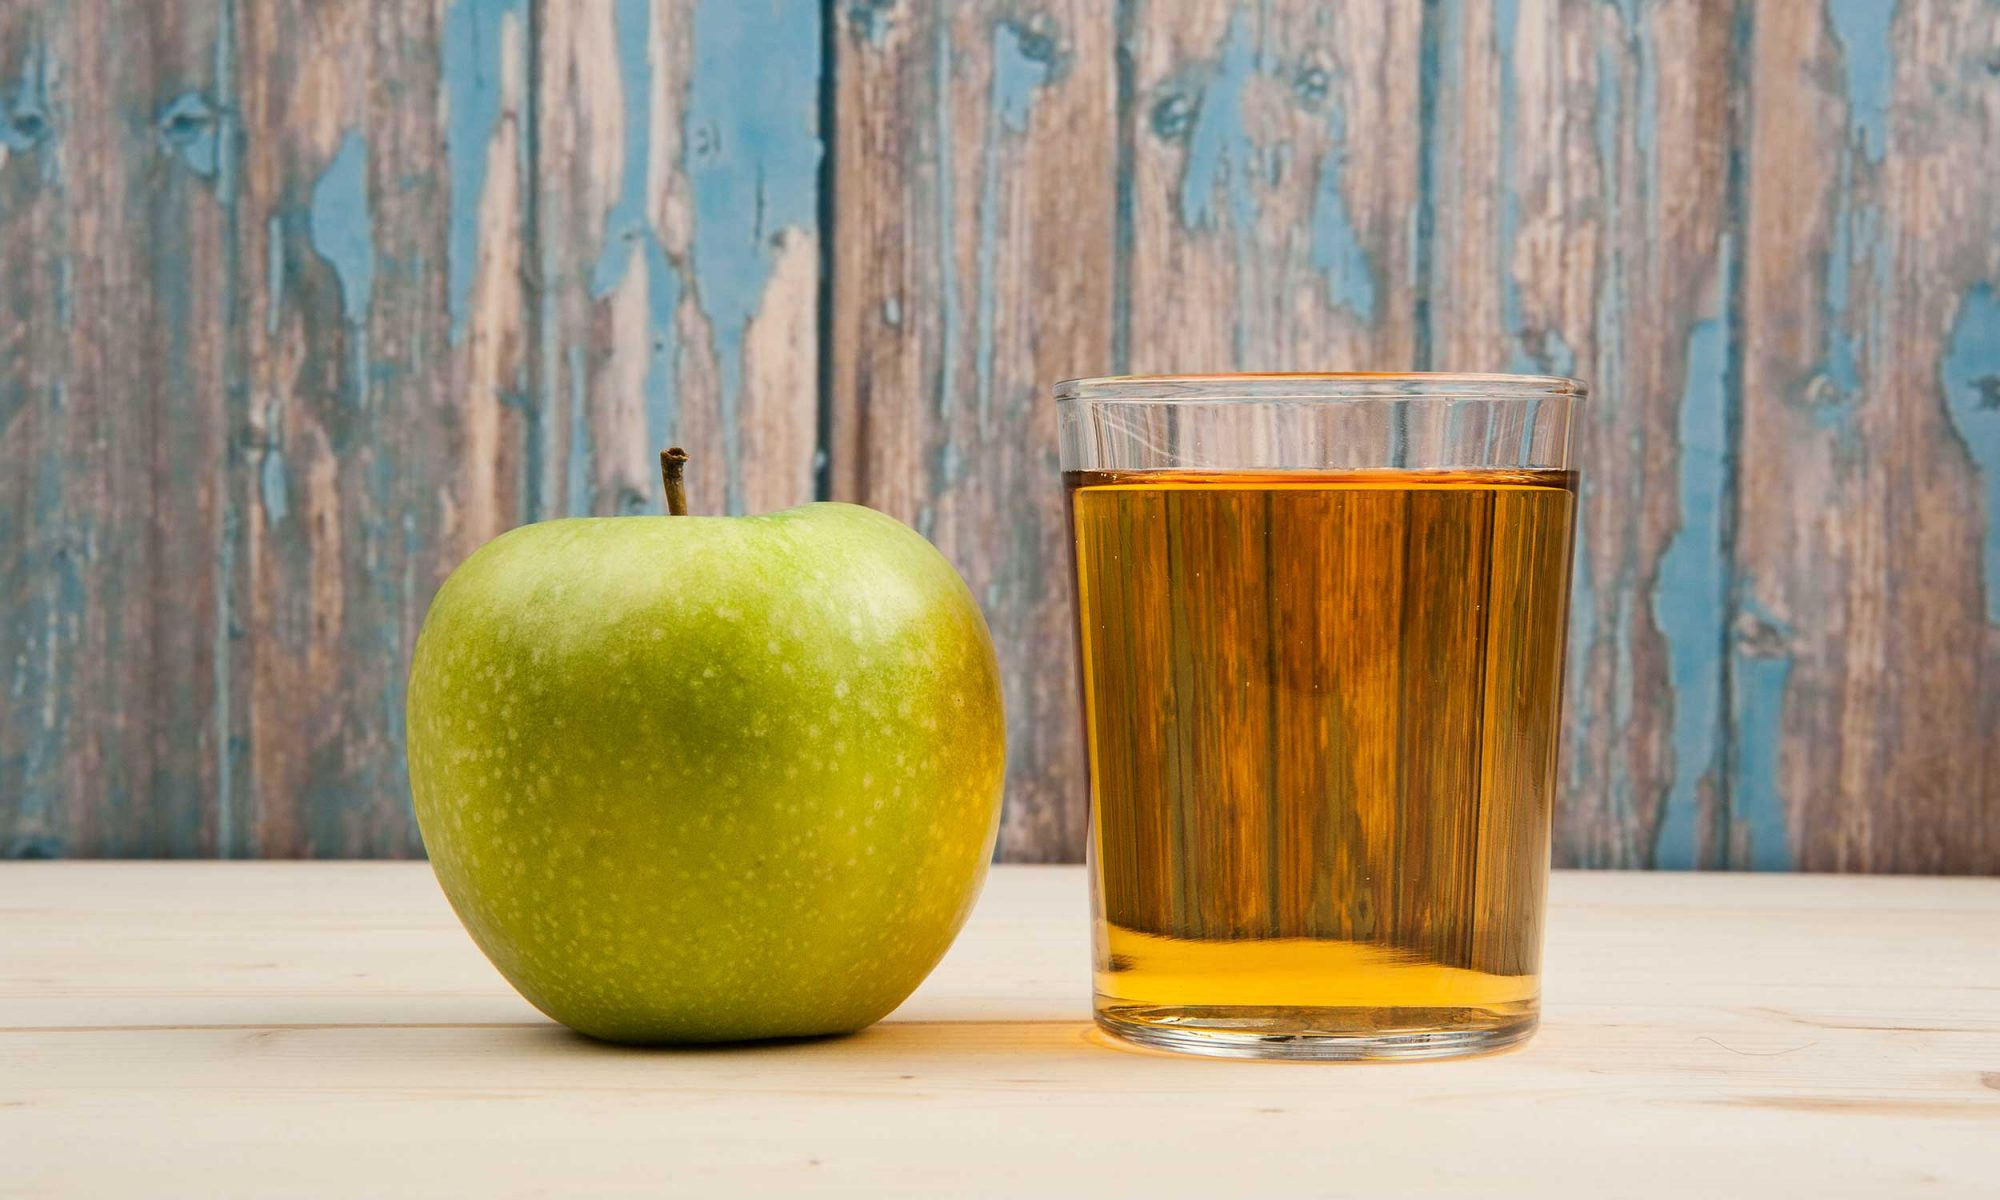 EC: What's the Difference Between Apple Juice and Apple Cider?